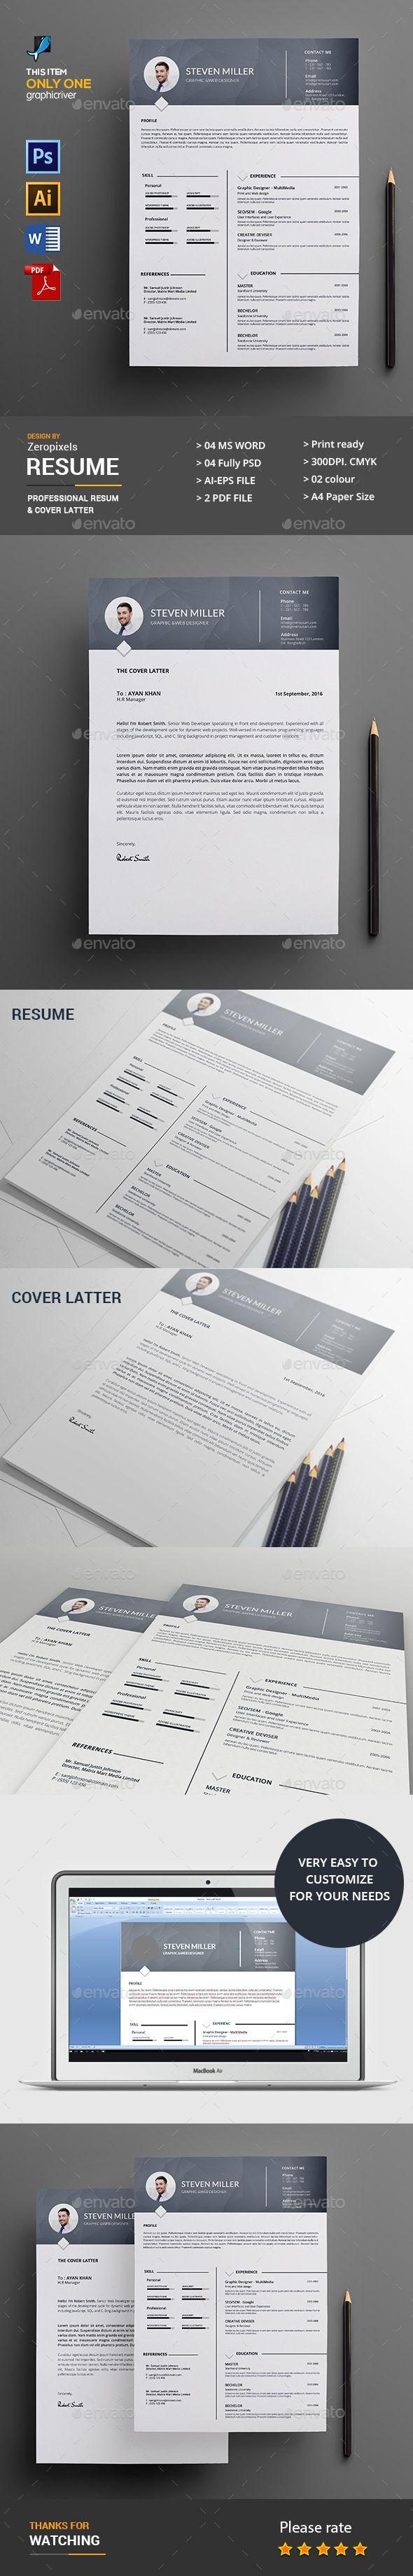 Resume Template PSD Vector EPS AI Illustrator